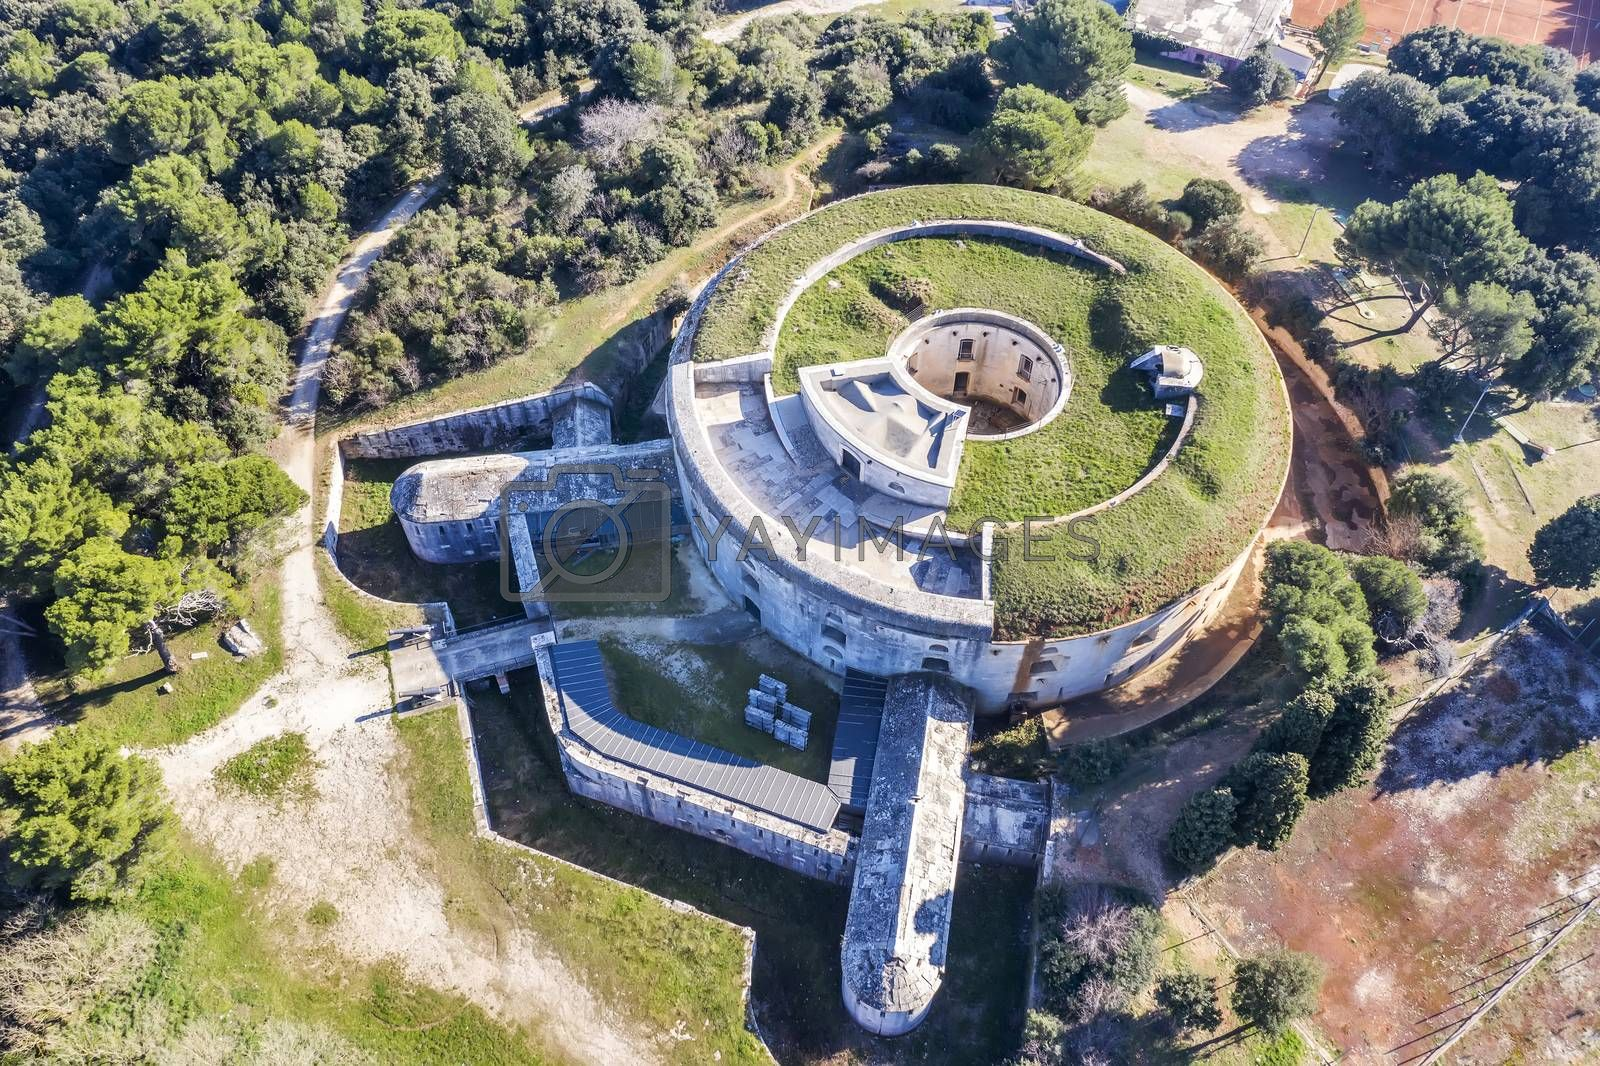 aerial view of Fort Bourguignon, a fortress built during the Austrian Empire in Pula, Istria, Croatia